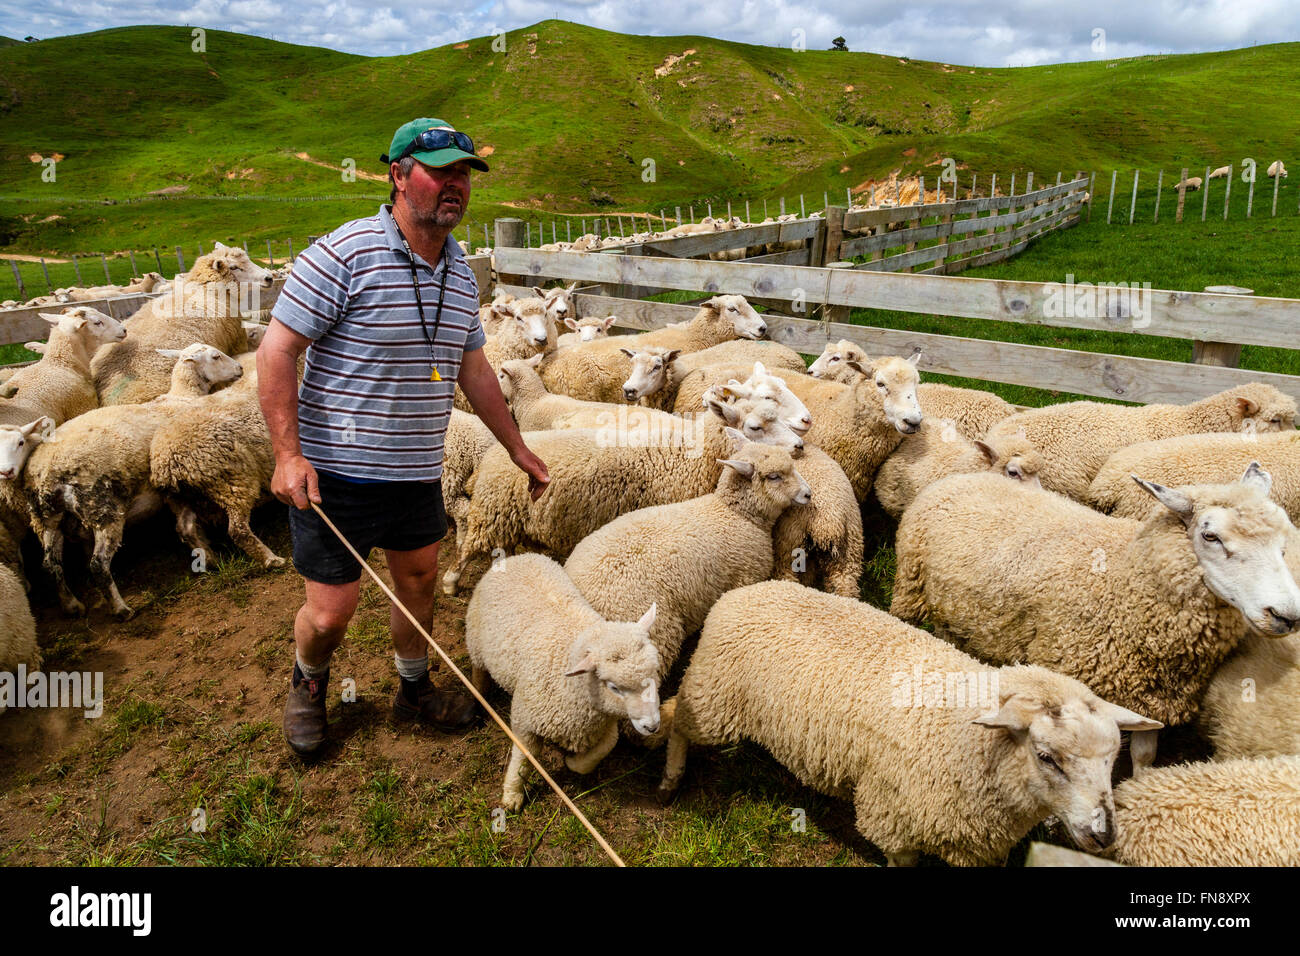 Sheep In A Pen Waiting To Be Counted and Weighed, Sheep Farm, Pukekohe, North Island, New Zealand - Stock Image